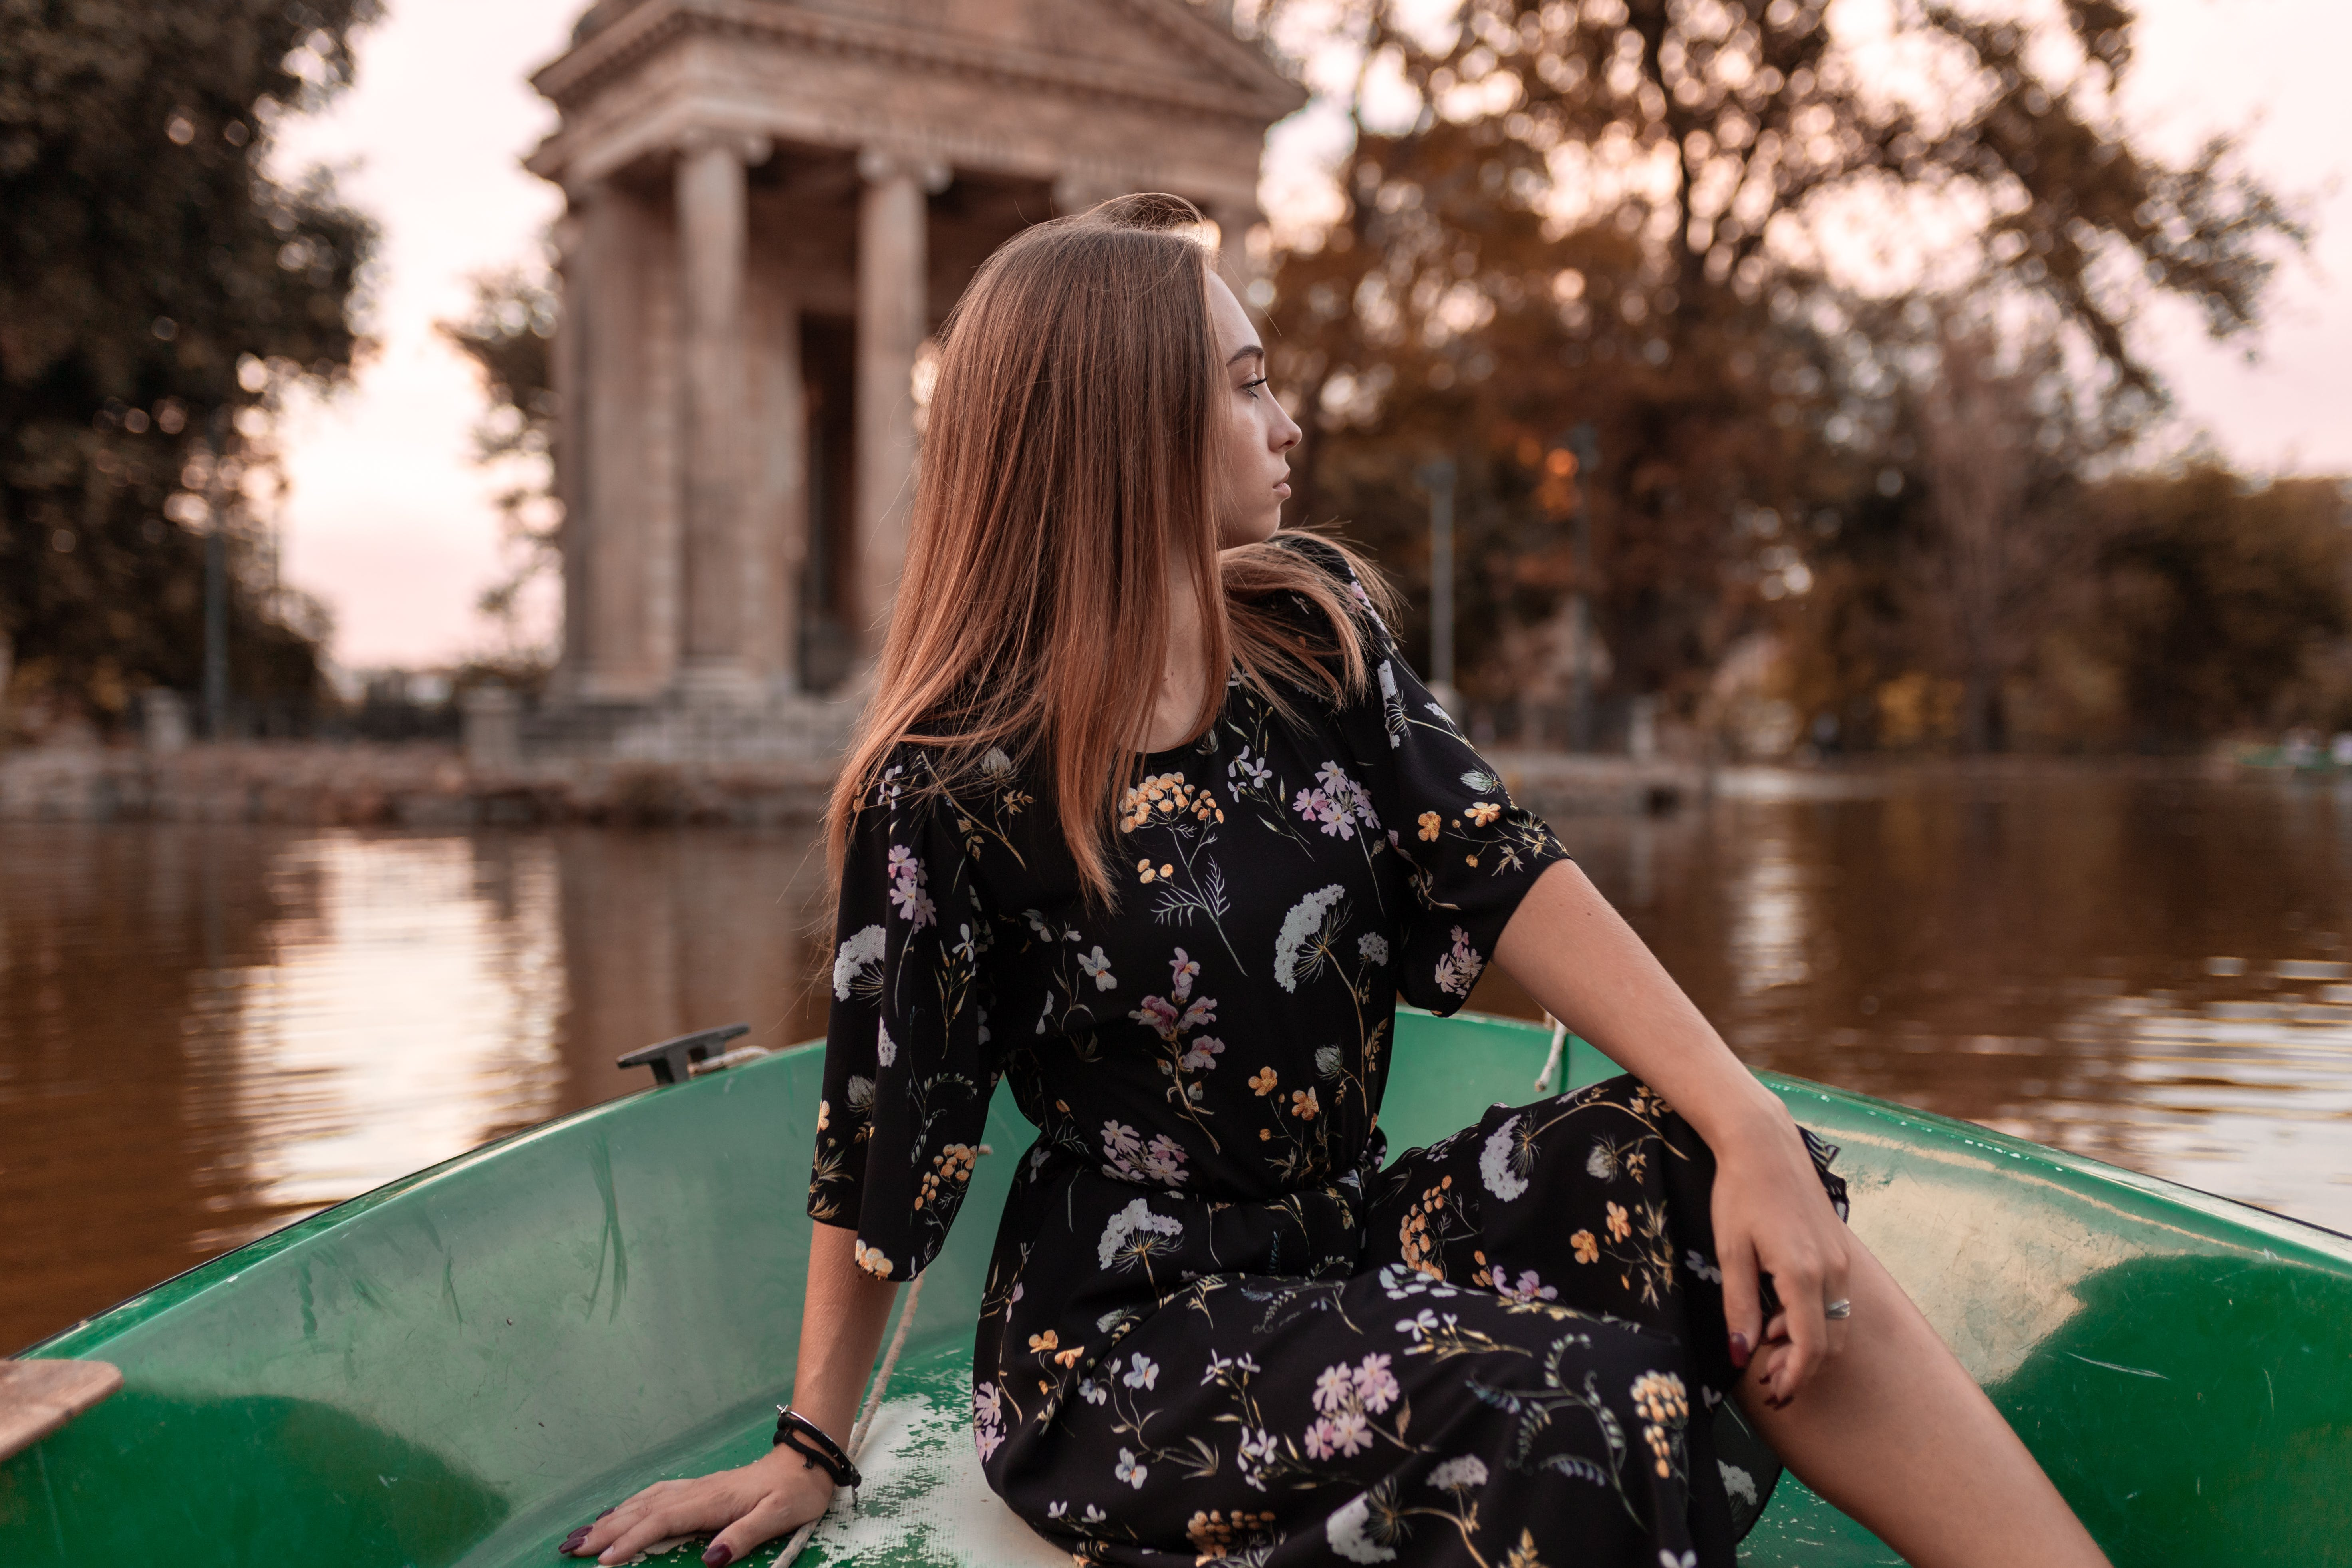 Woman in Black Dress Riding Boat